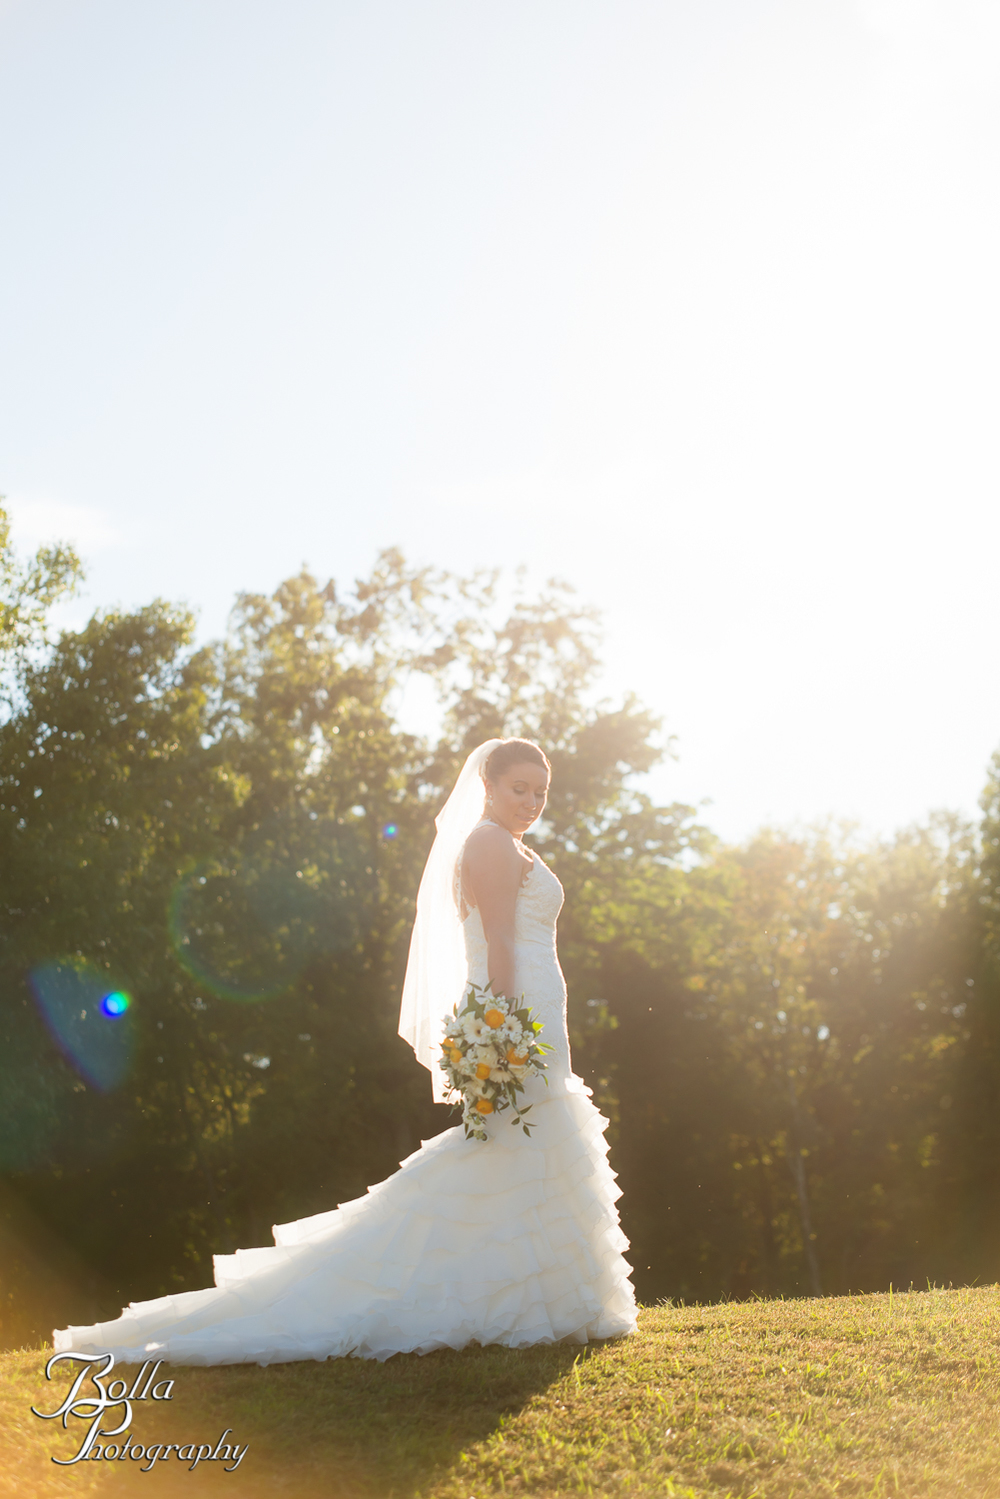 Bolla_Photography_St_Louis_wedding_photographer-0413.jpg